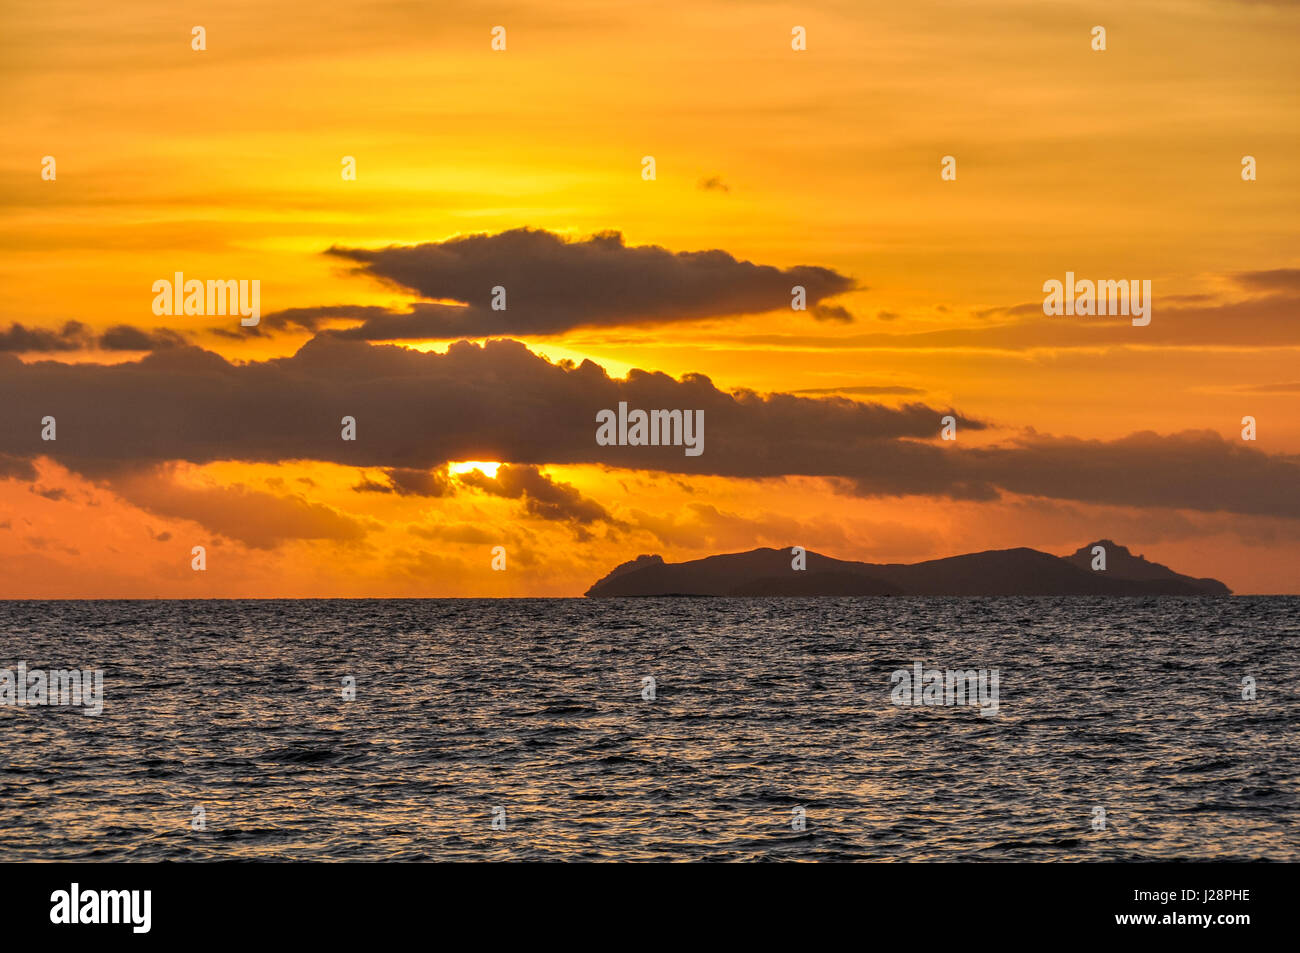 Intense colors at sunset on Bounty Island in Fiji - Stock Image